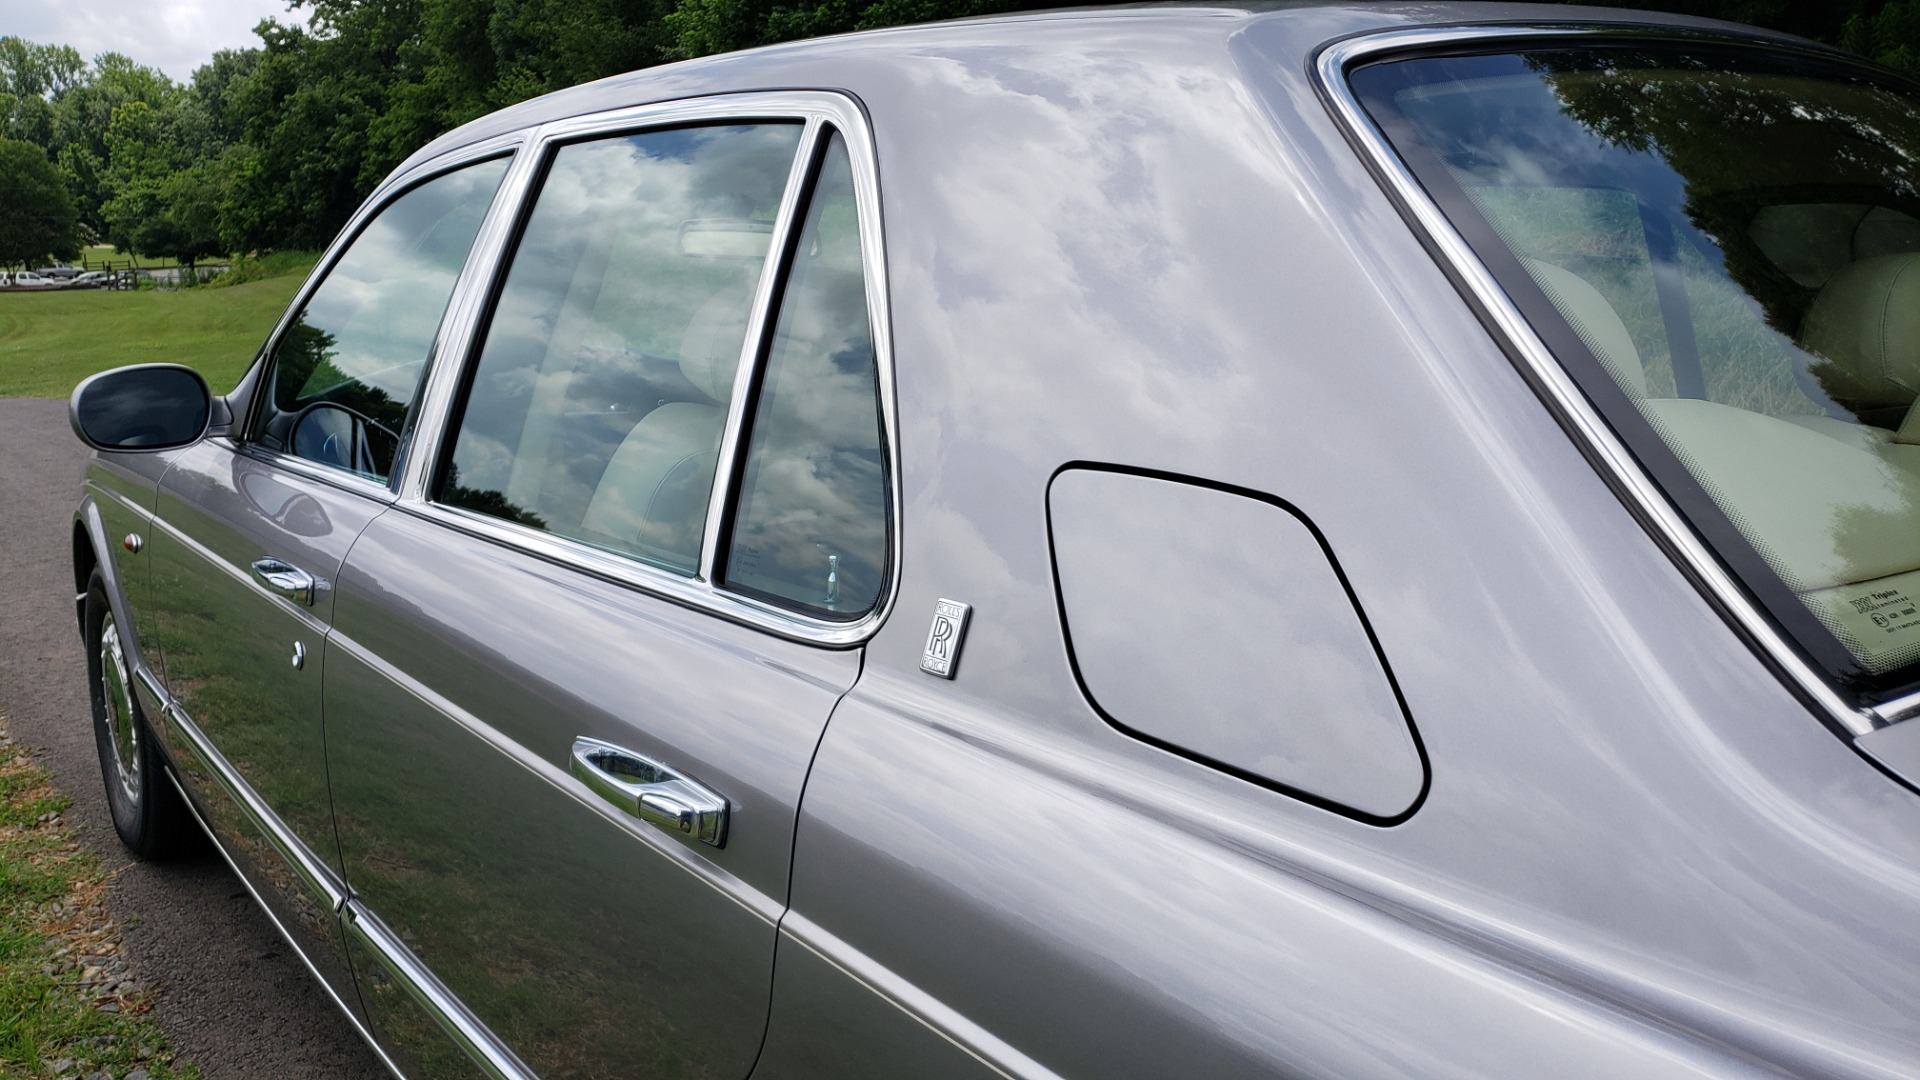 Used 1999 Rolls-Royce SILVER SERAPH 5.4L V12 / AUTO TRANS / LOW MILES / VERY CLEAN! for sale $34,999 at Formula Imports in Charlotte NC 28227 6